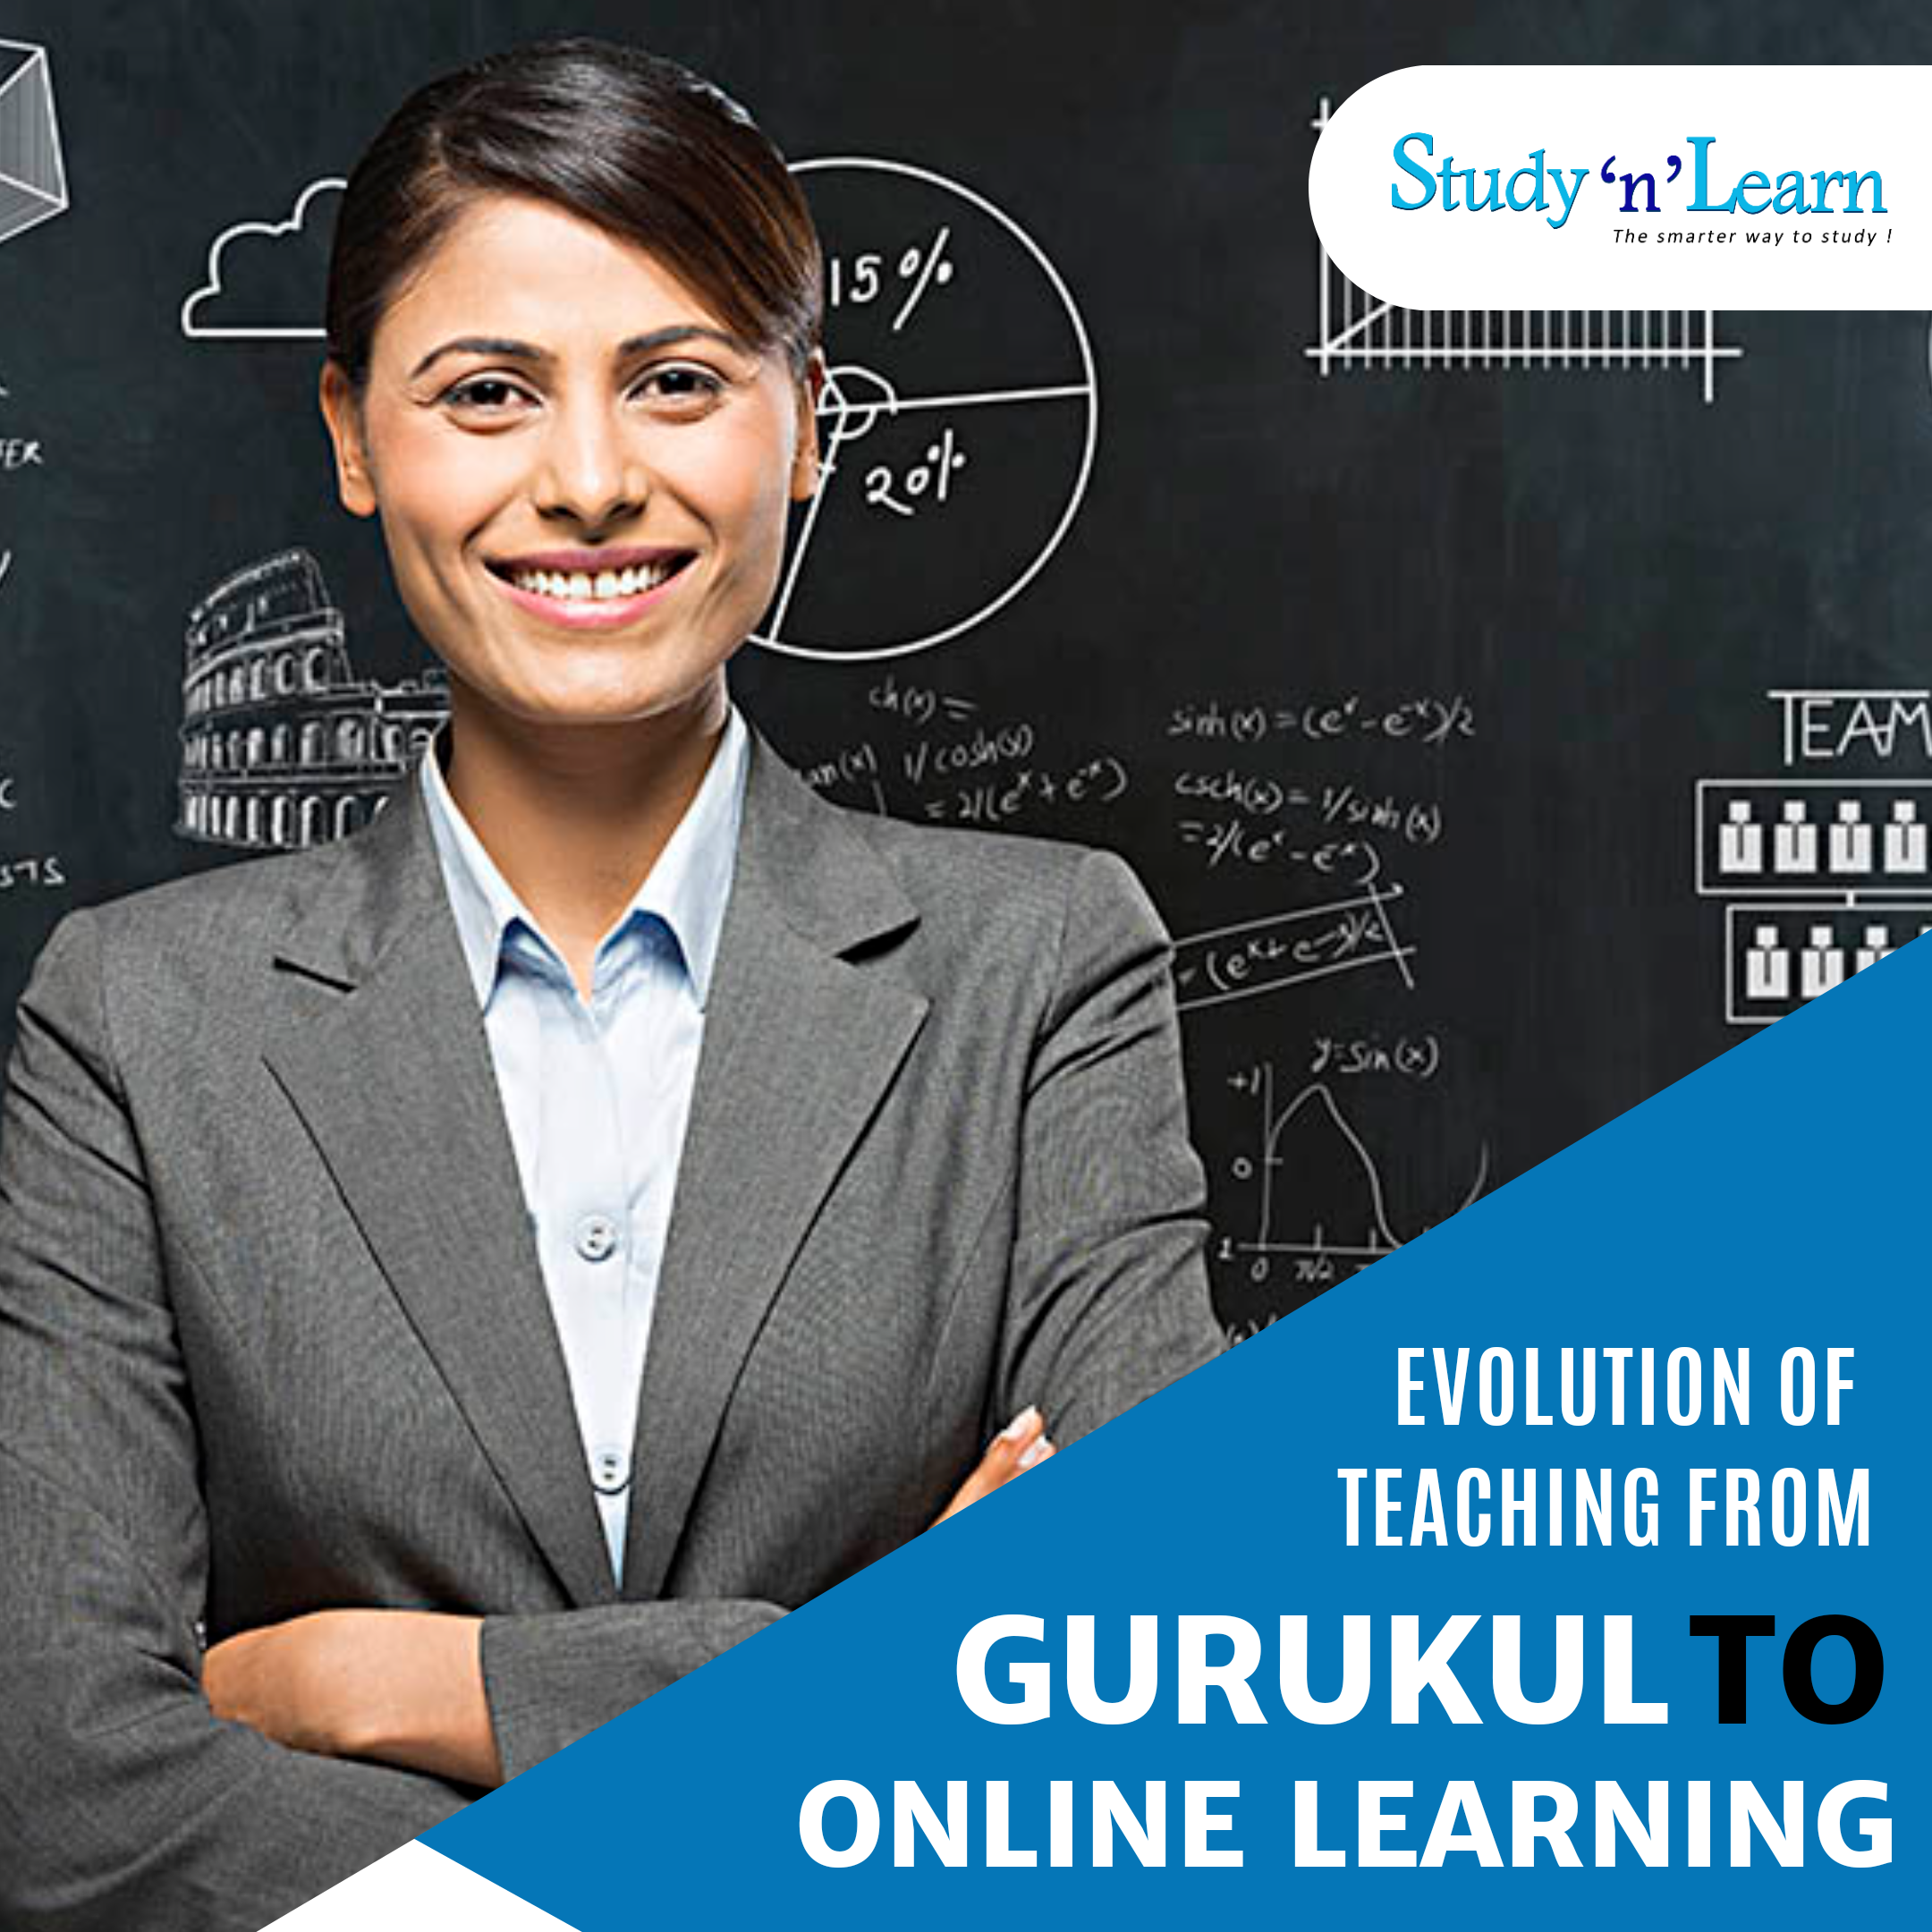 How Teaching Has Evolved from Gurukul to Online Learning